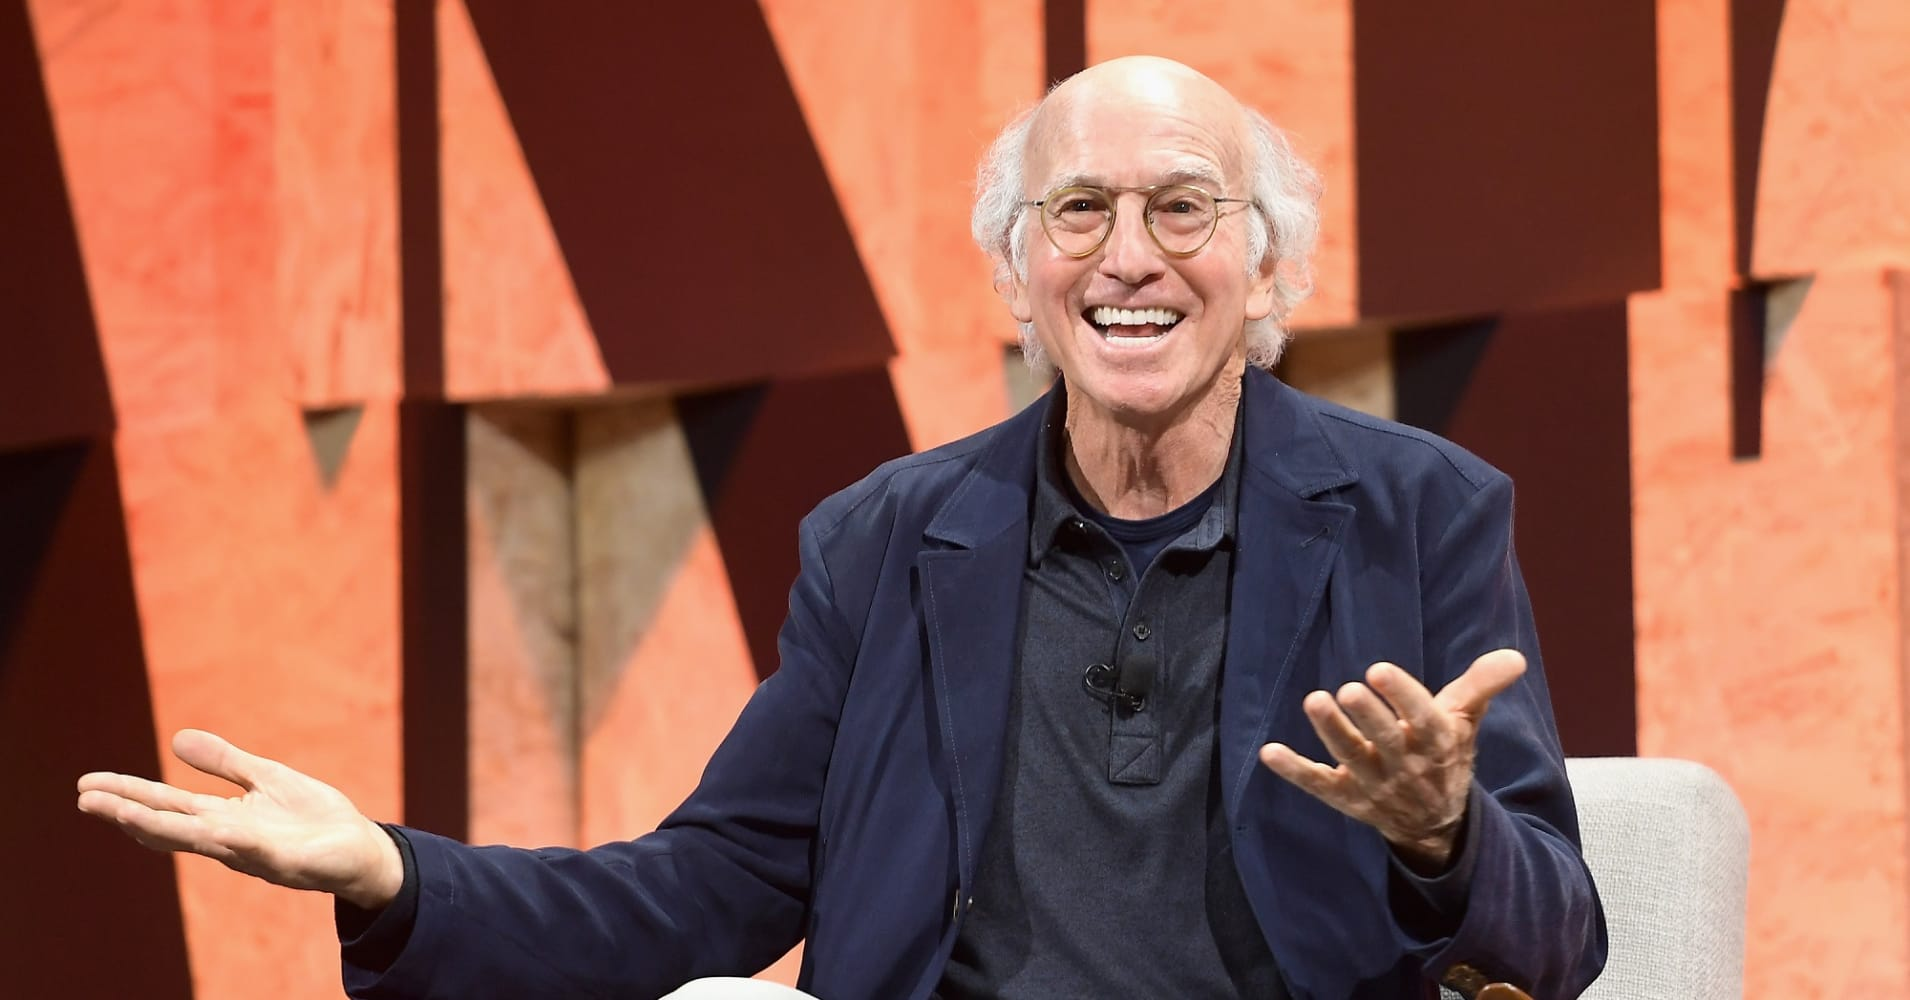 Larry David, the star of HBO's Curb Your Enthusiasm